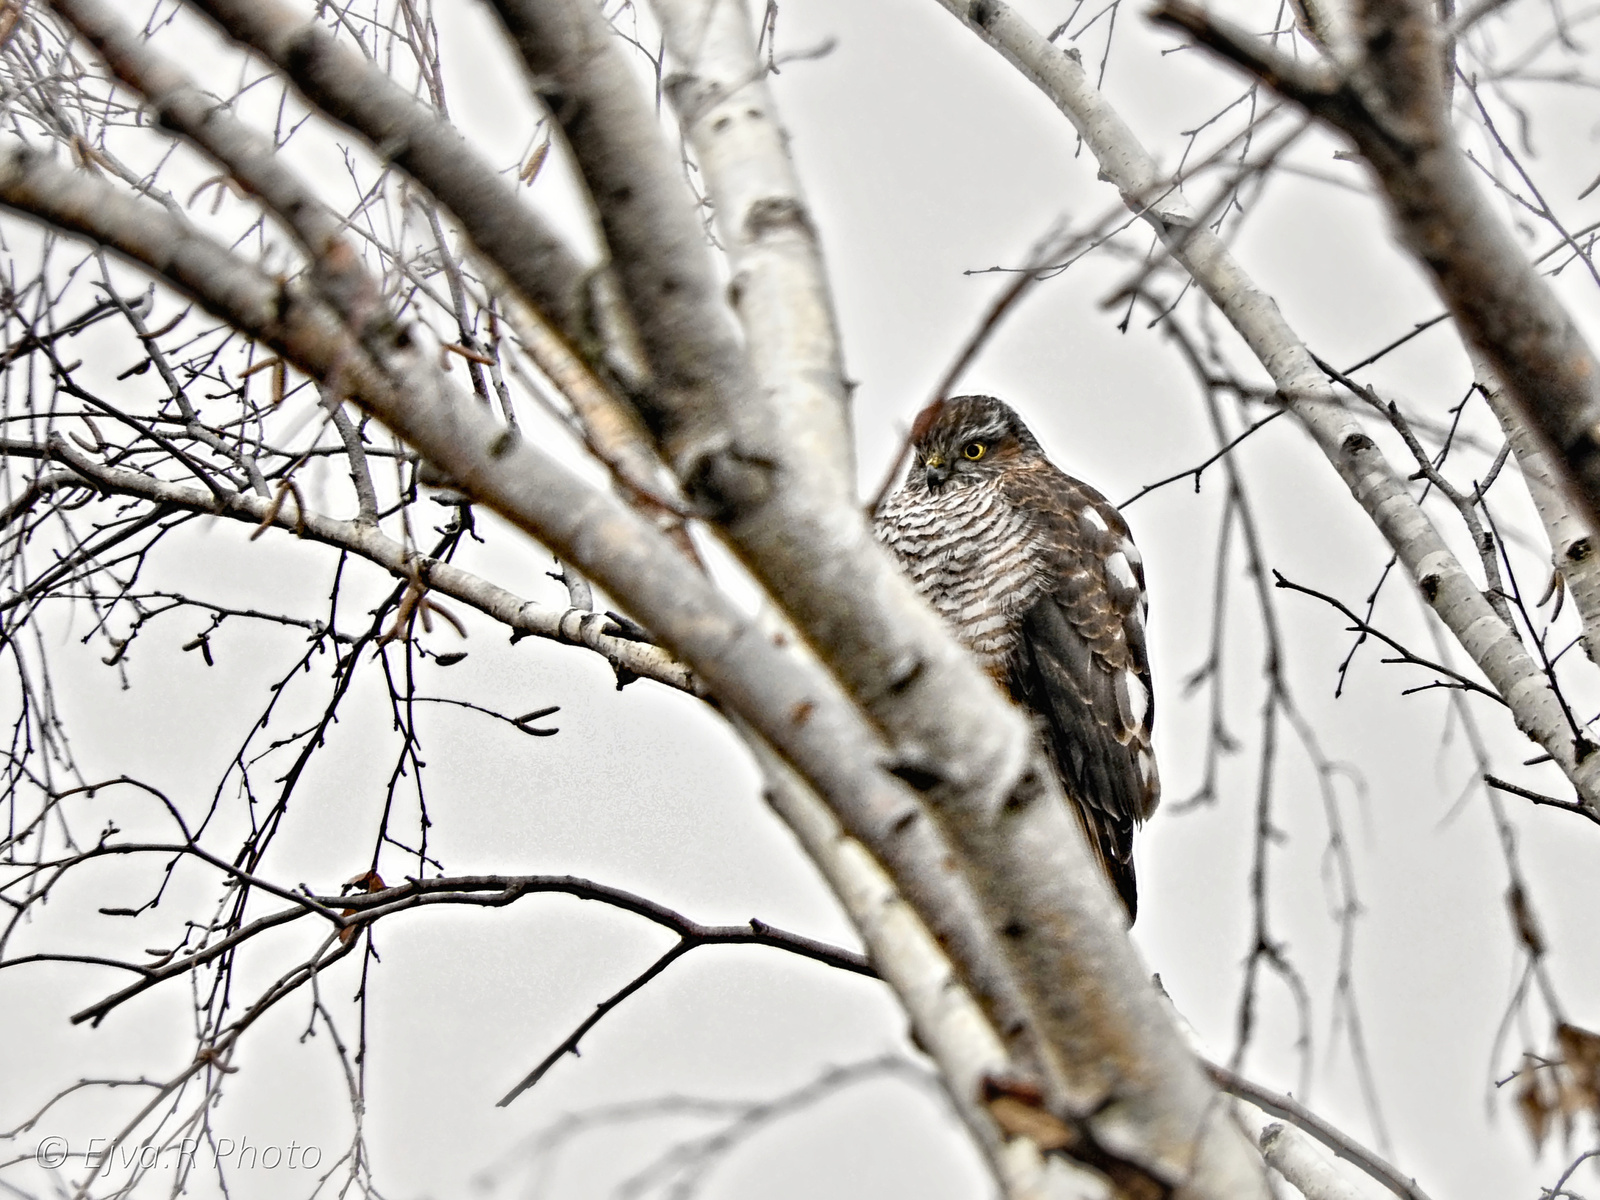 A karvaly (Accipiter nisus)